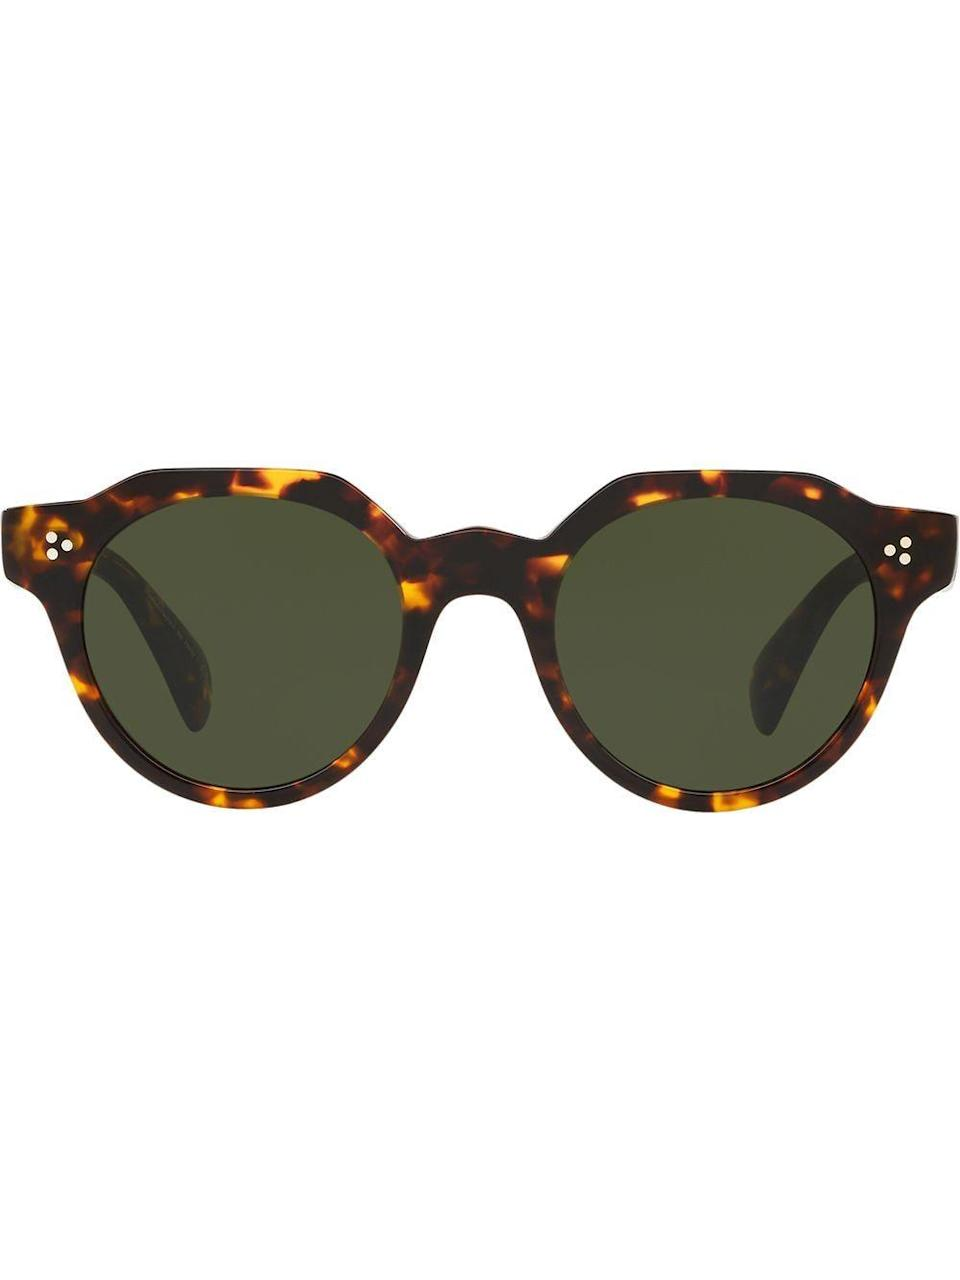 """<p><strong>Oliver Peoples</strong></p><p>farfetch.com</p><p><a href=""""https://go.redirectingat.com?id=74968X1596630&url=https%3A%2F%2Fwww.farfetch.com%2Fshopping%2Fmen%2Foliver-peoples-irven-sunglasses-item-14051413.aspx&sref=https%3A%2F%2Fwww.elle.com%2Ffashion%2Fshopping%2Fg36292145%2Fmothers-day-gifts-sale%2F"""" rel=""""nofollow noopener"""" target=""""_blank"""" data-ylk=""""slk:Shop Now"""" class=""""link rapid-noclick-resp"""">Shop Now</a></p><p><strong><del>$380</del> $190 (50% off)</strong></p><p>They say the best gifts are the ones you want for yourself.</p>"""